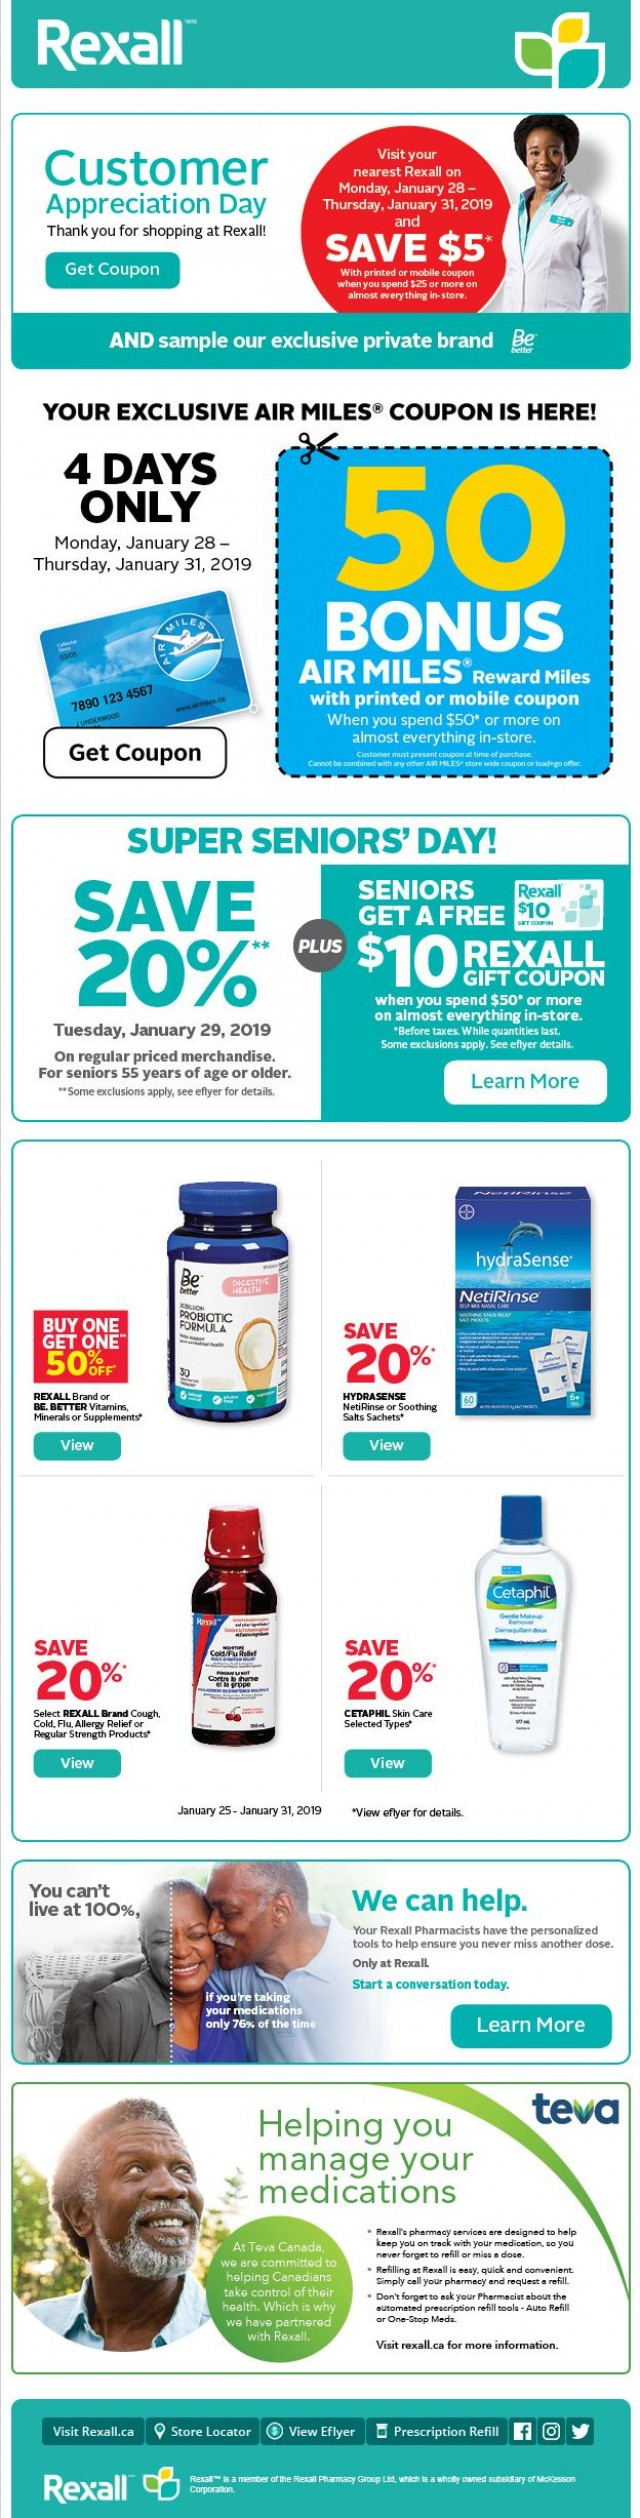 Coupon for: Rexall - Special sale up to 20% off on selected items.